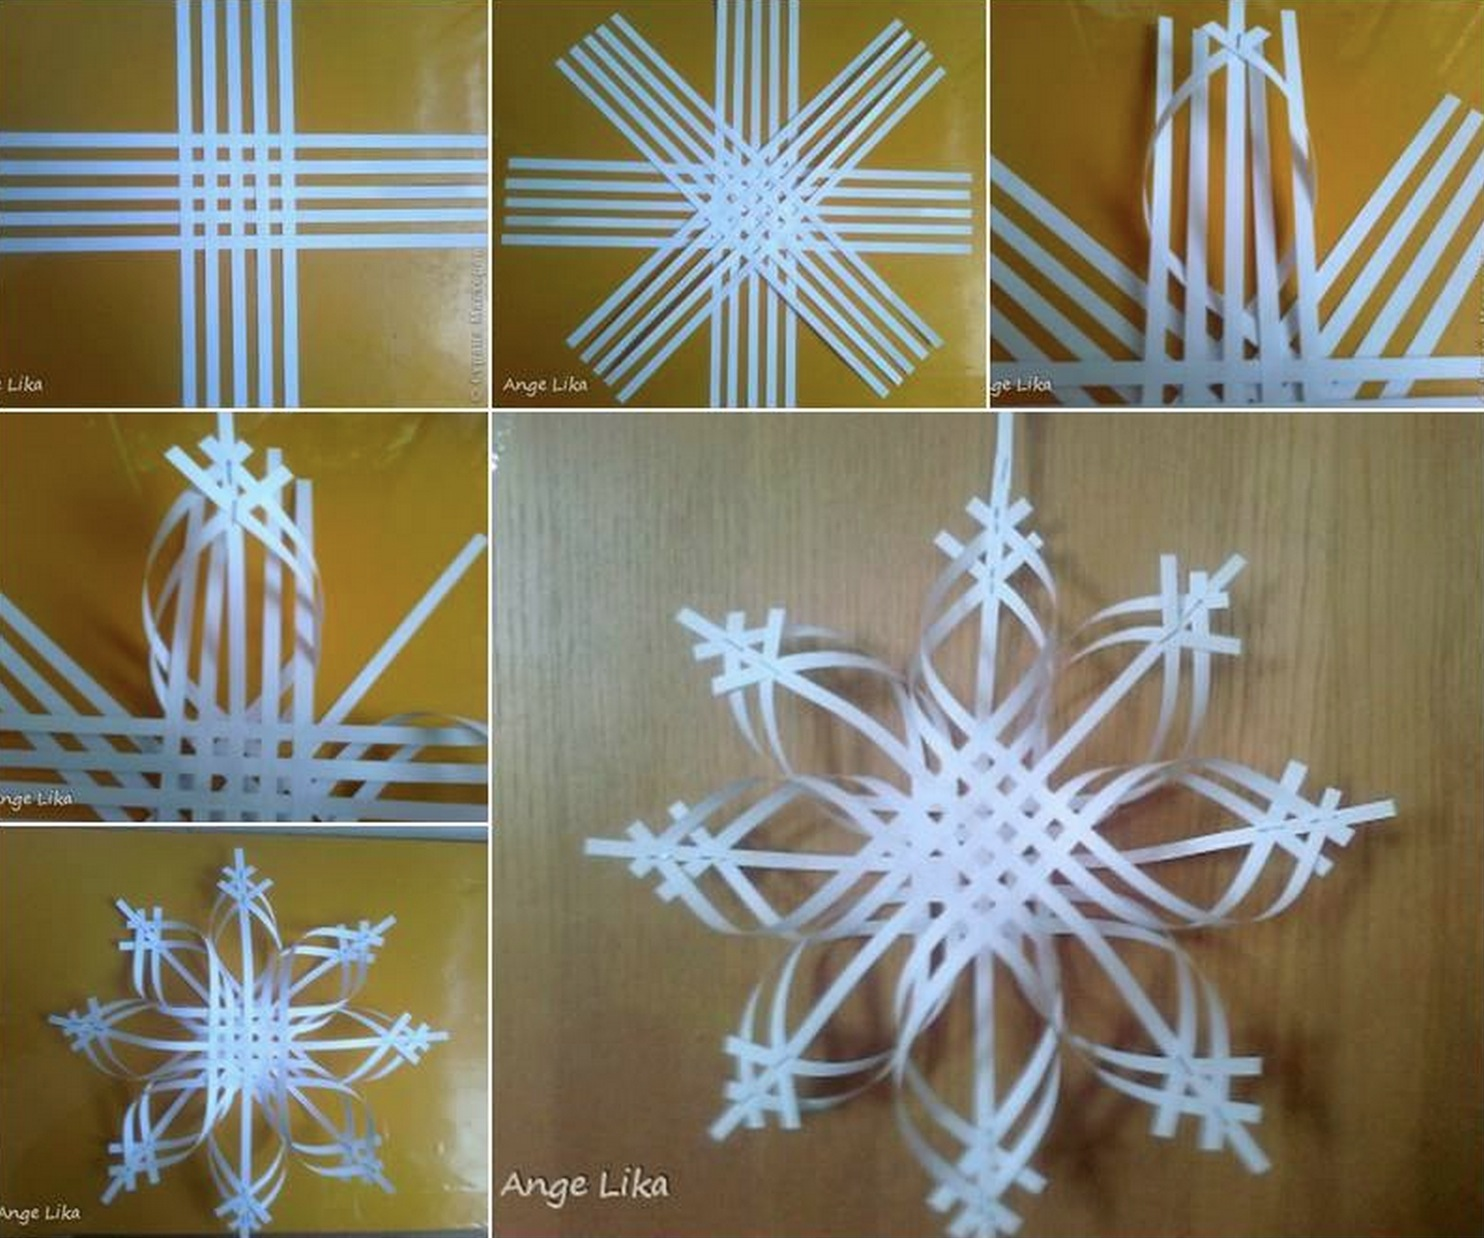 Home Decoration: Wonderful DIY Colorful Woven Star Snowflake